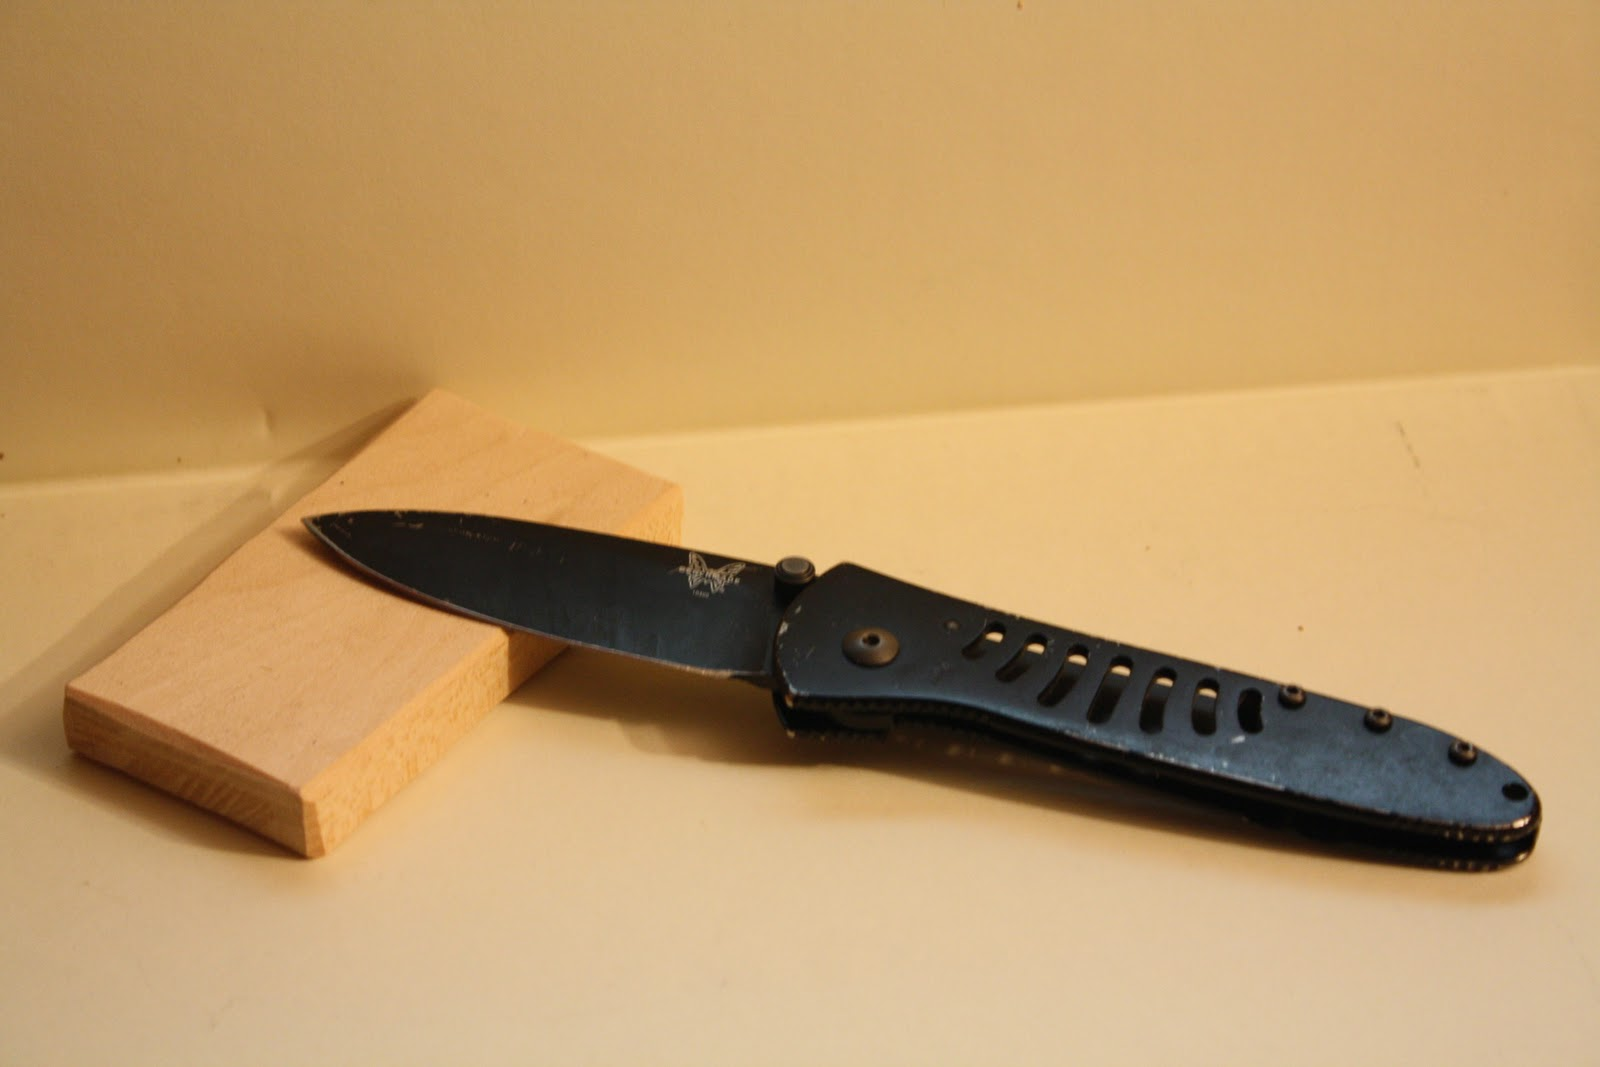 knife review benchmade 10300 knife review center knife review benchmade 10300